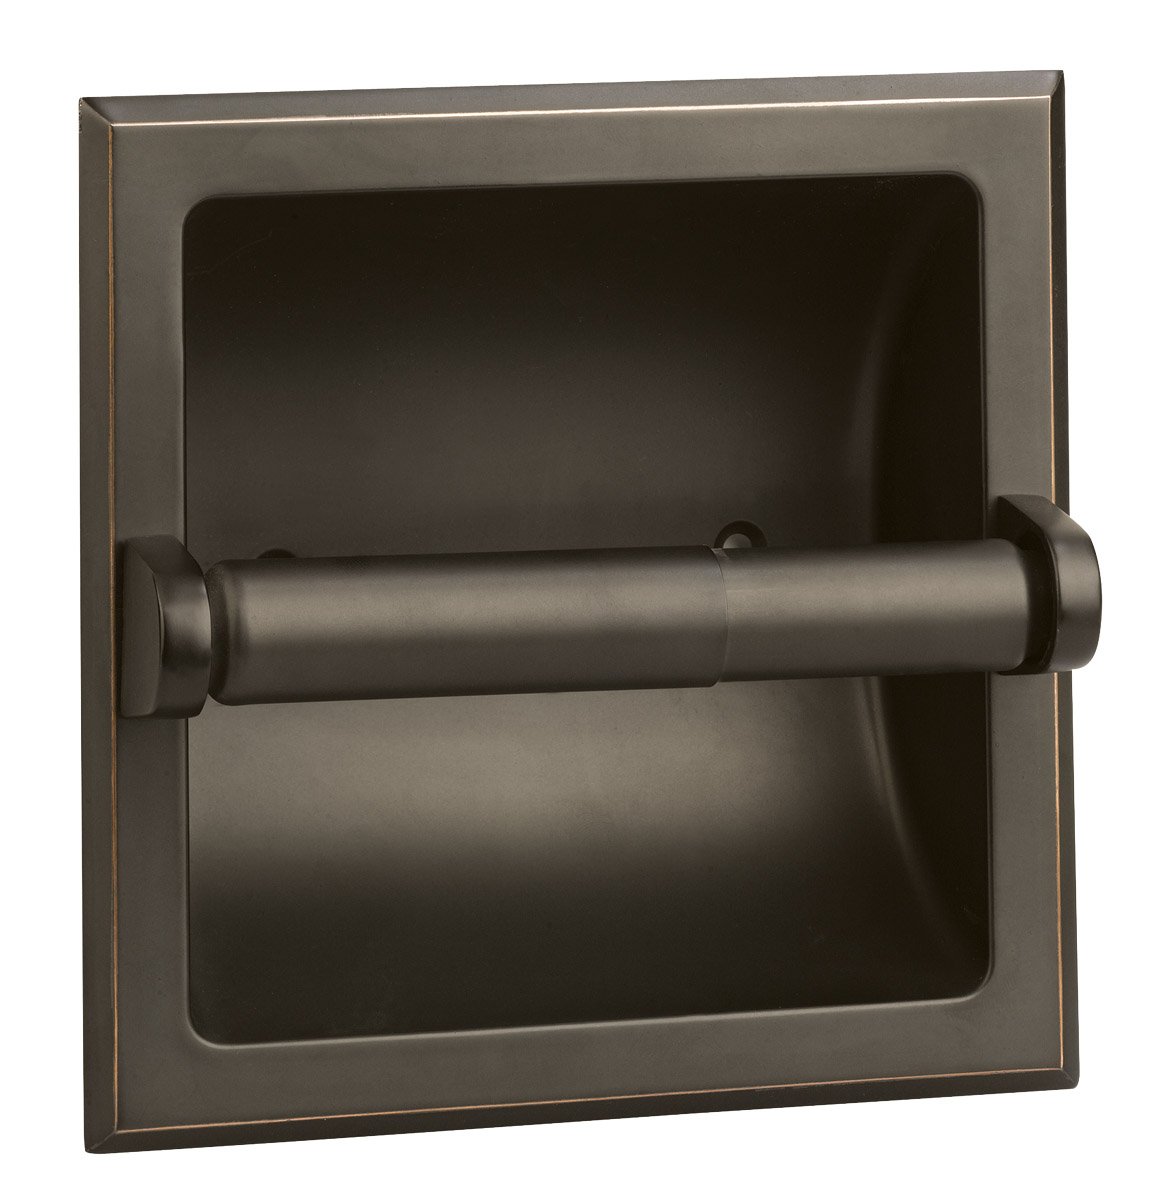 Concealed Toilet Paper Holder Design House 539254 Millbridge Recessed Toilet Paper